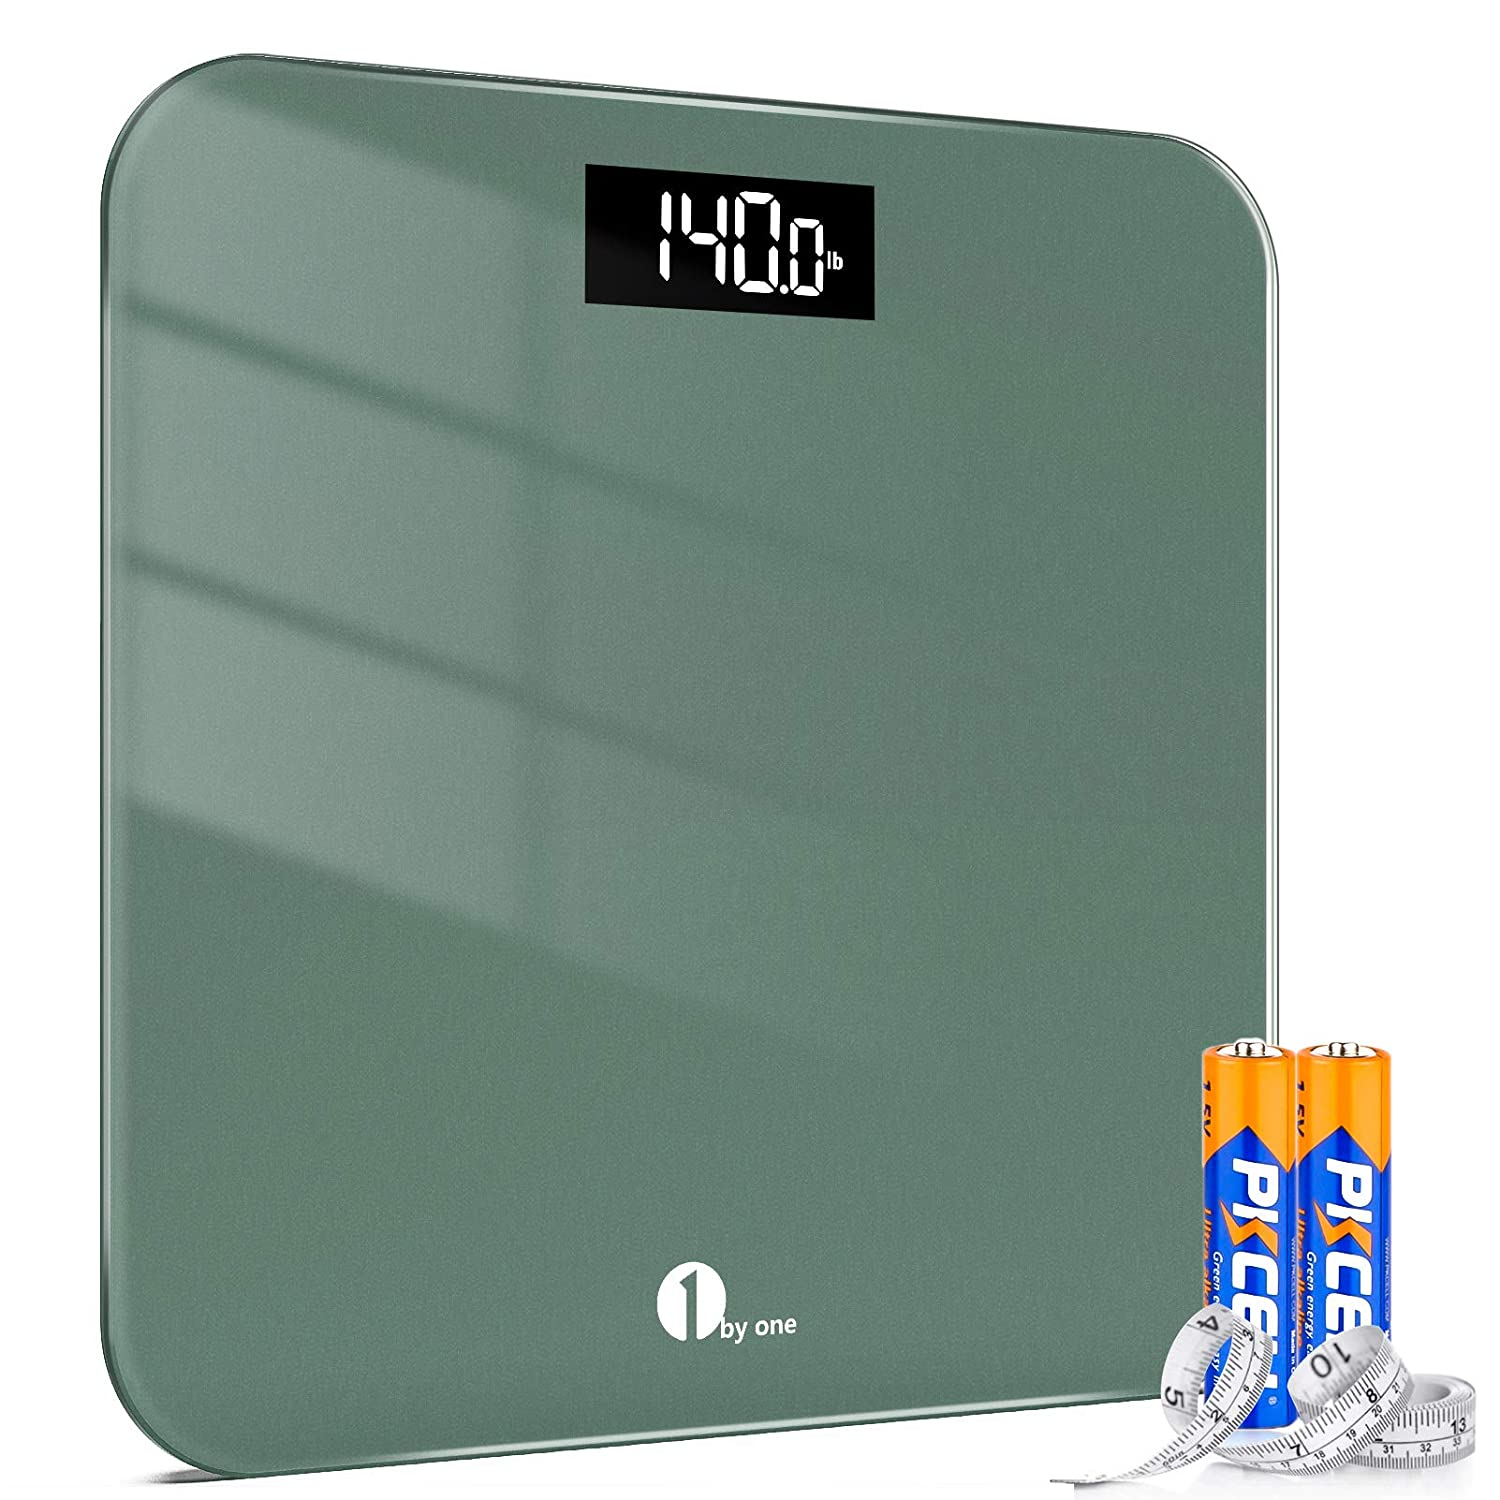 Amazon Com 1byone Digital Scales For Body Weight Bathroom Scale With Accuracy Led Display 400 Lbs Capacity Tape Measure And Batteries Included Green Industrial Scientific